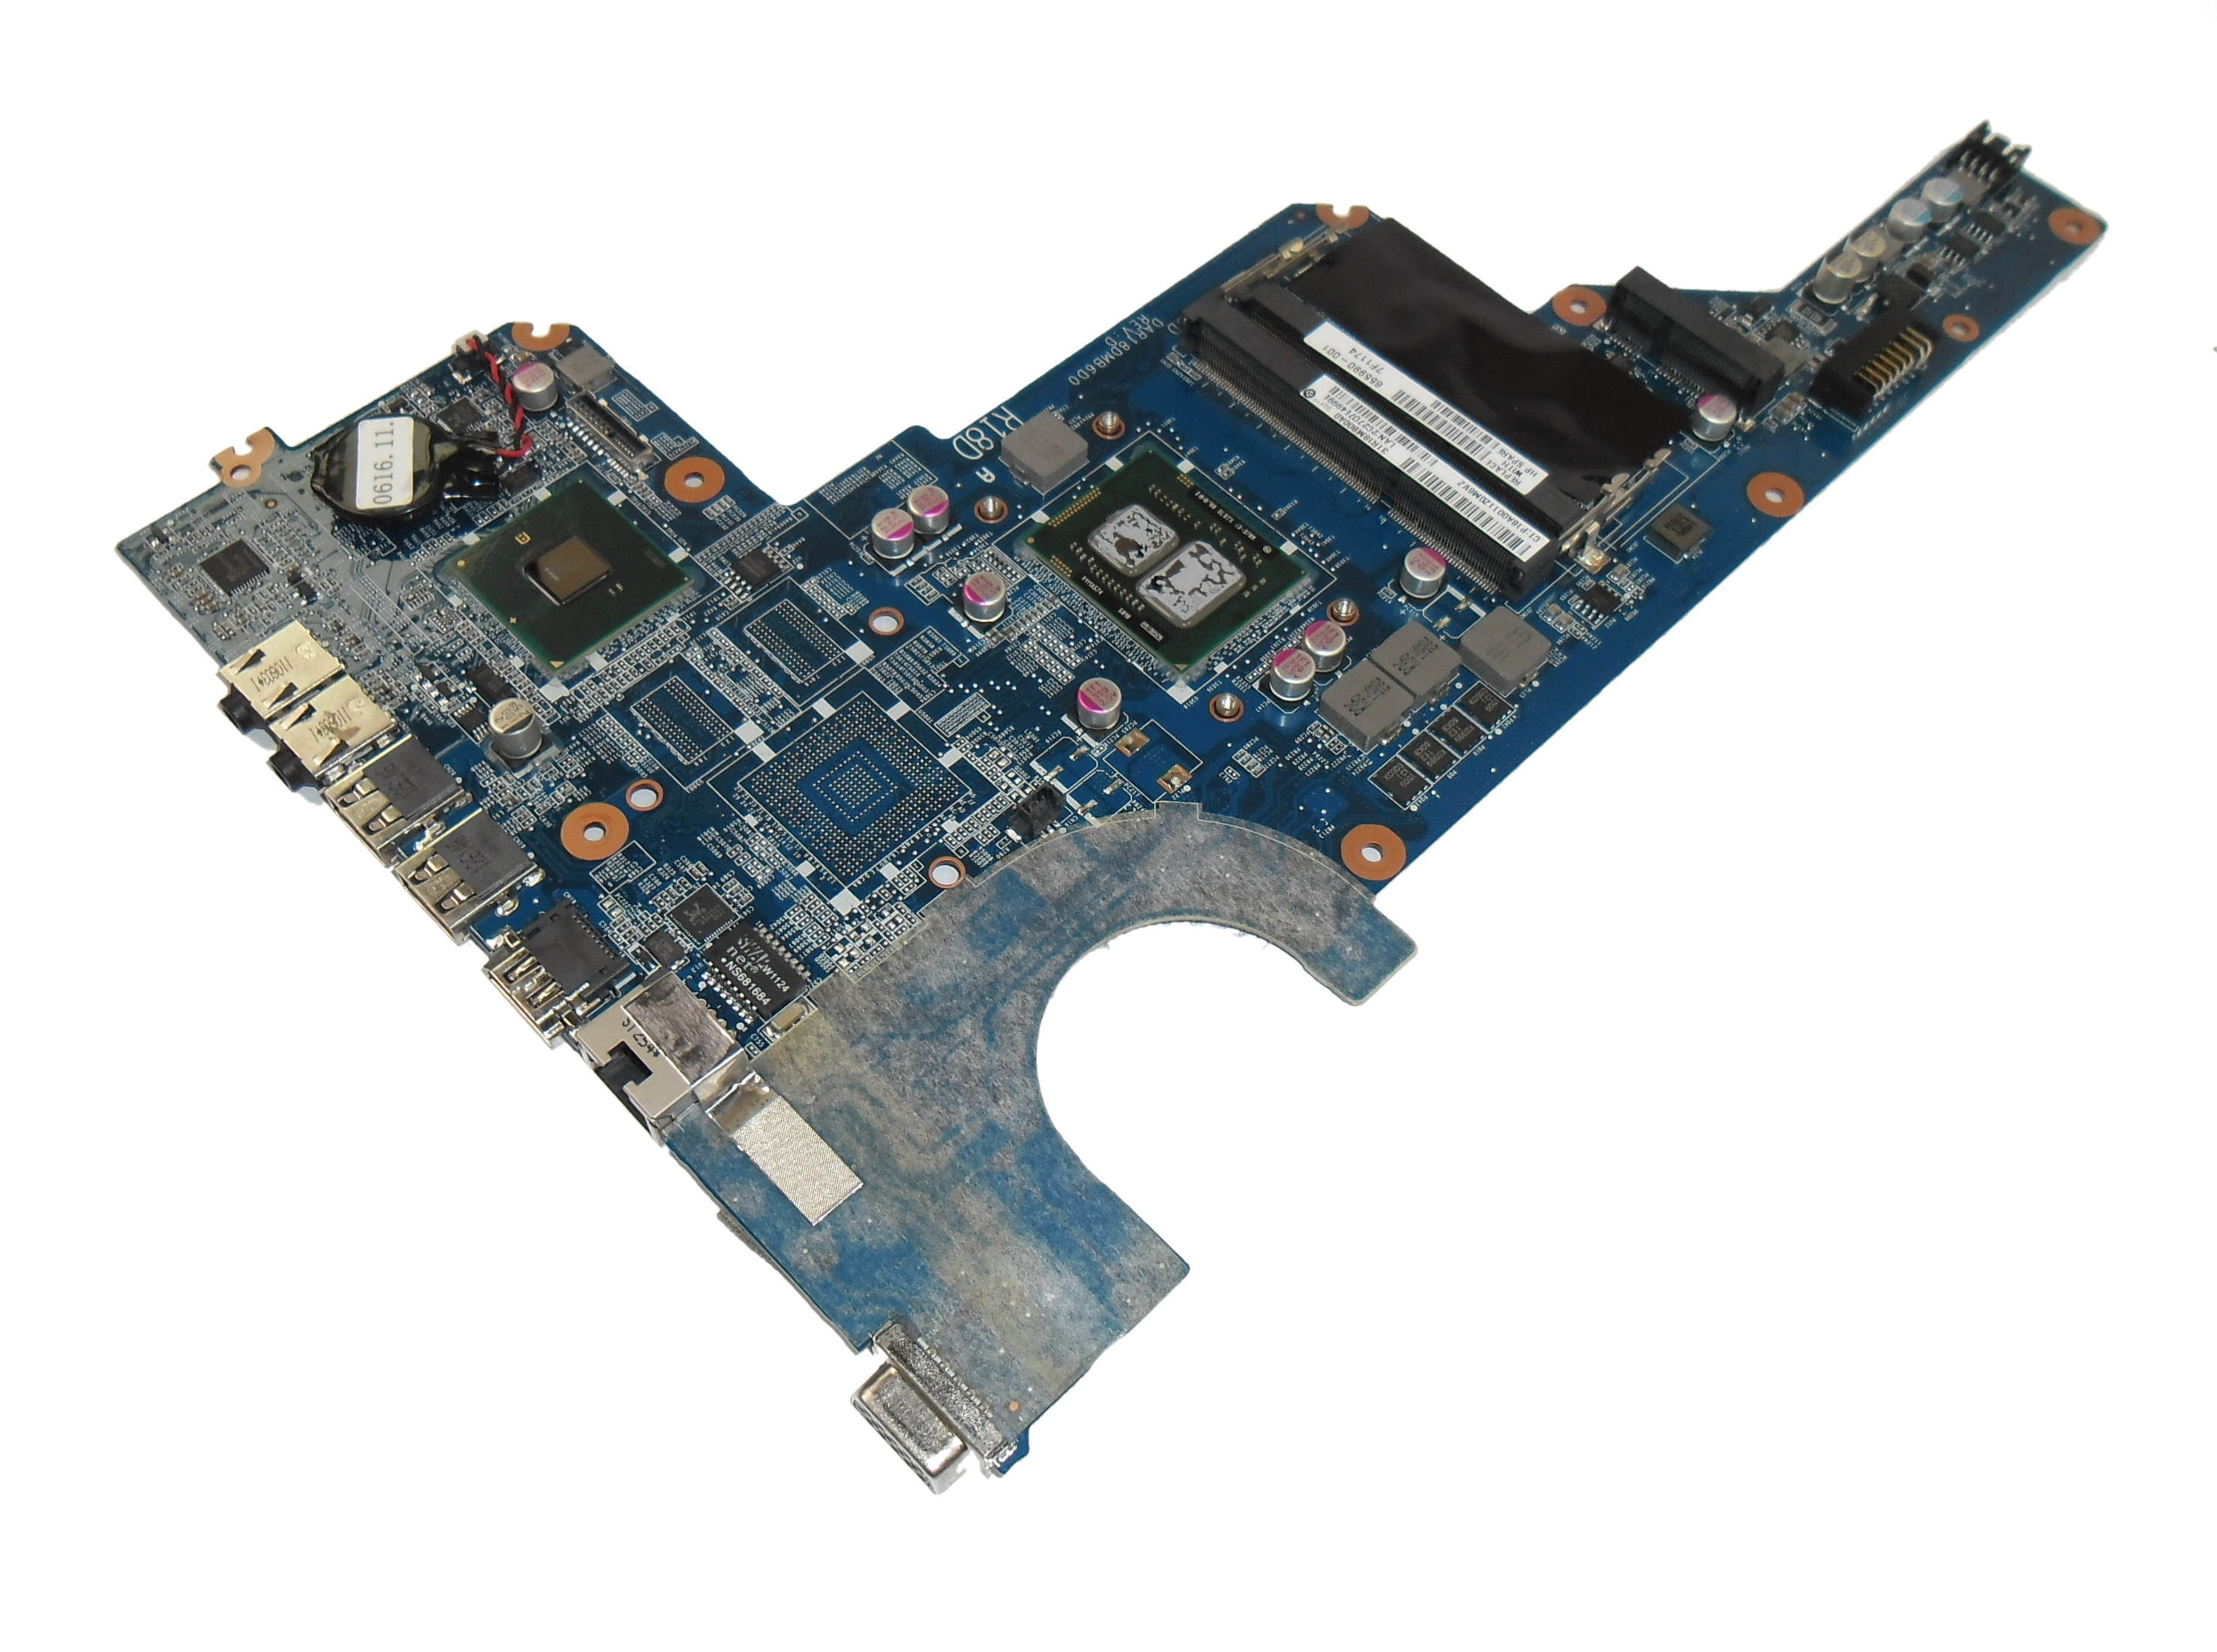 655990-001 HP Pavilion G6 Motherboard with Intel i3-370M (SLBTX) CPU